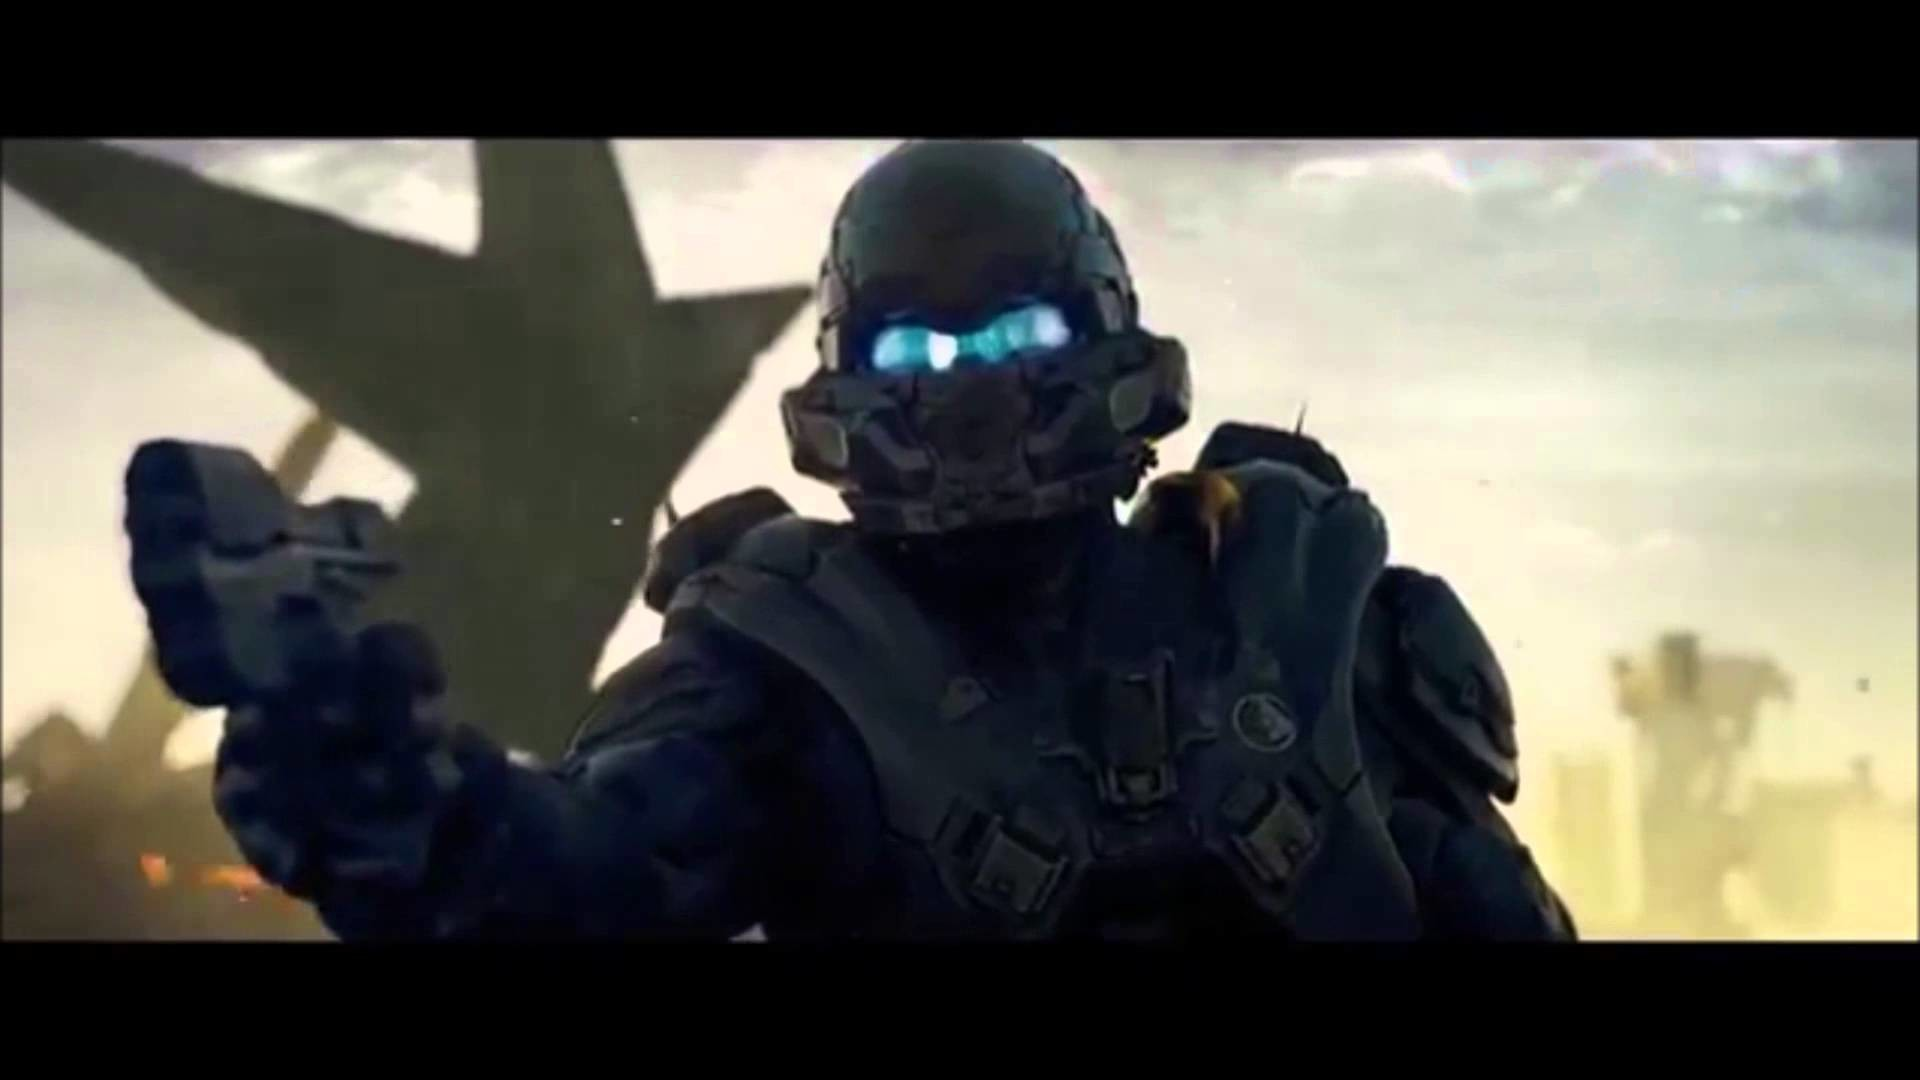 1920x1080 What Master Chief really wanted to say - Halo 5 Live Action Trailer